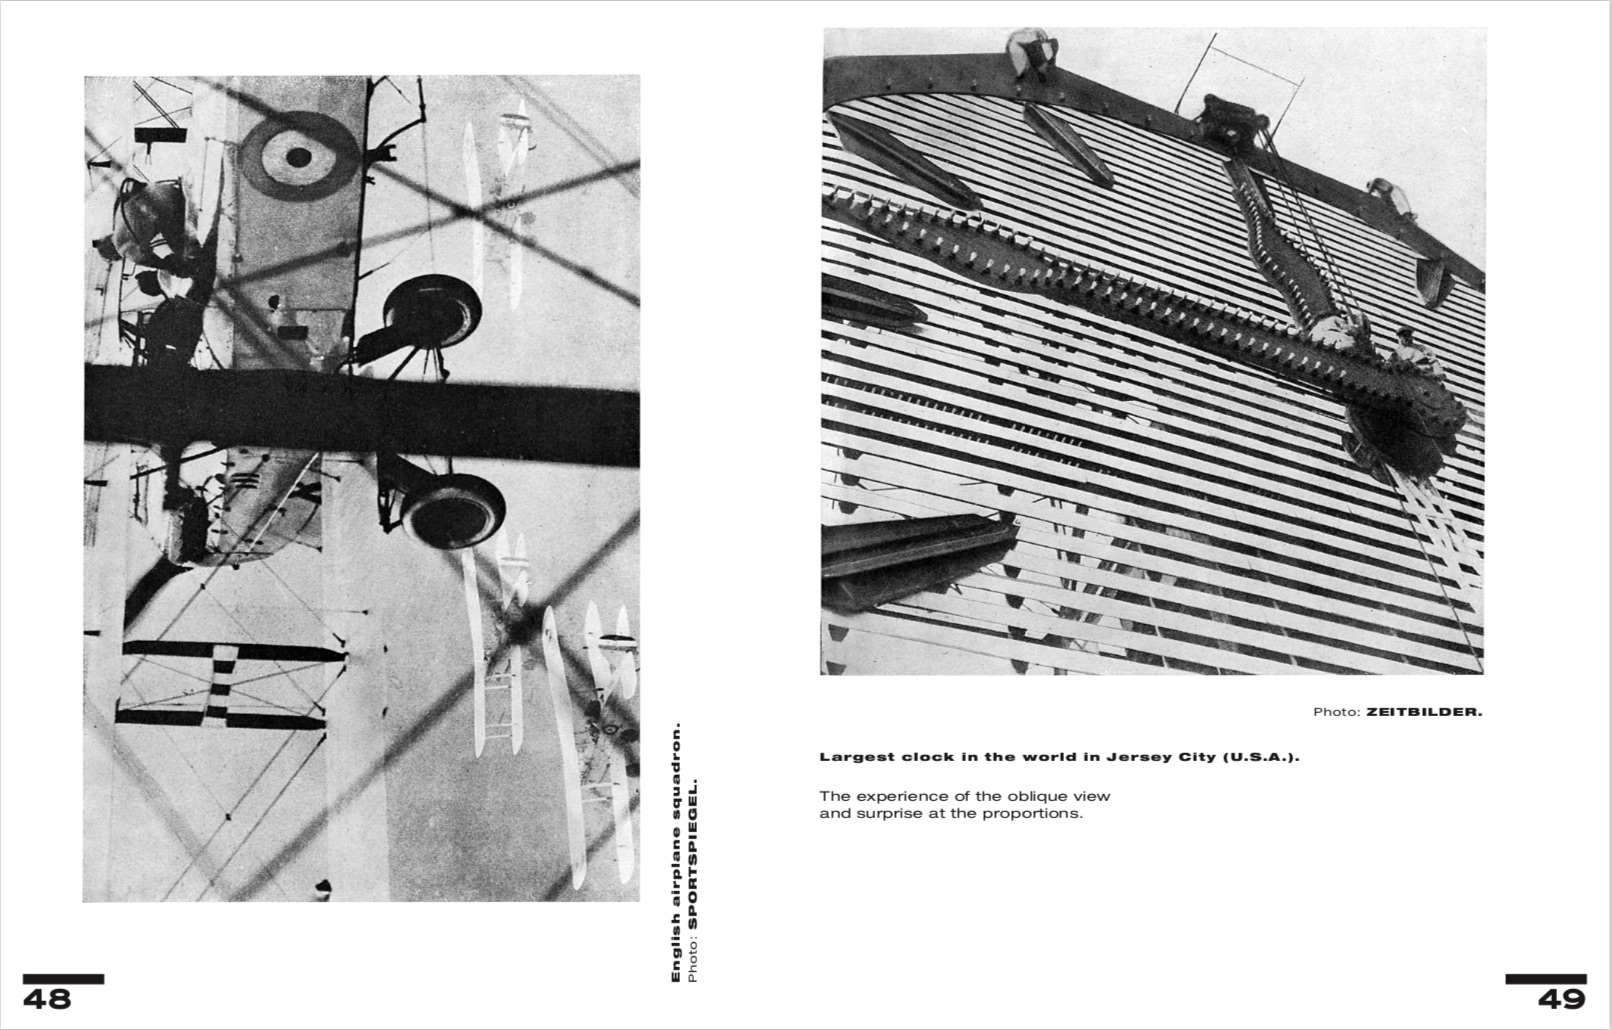 By Laszlo Moholy-Nagy from Laszlo Moholy-Nagy Painting, Photography, Film: Bauhausbucher 8, 1925 copyright Lars Muller Publishers 2019